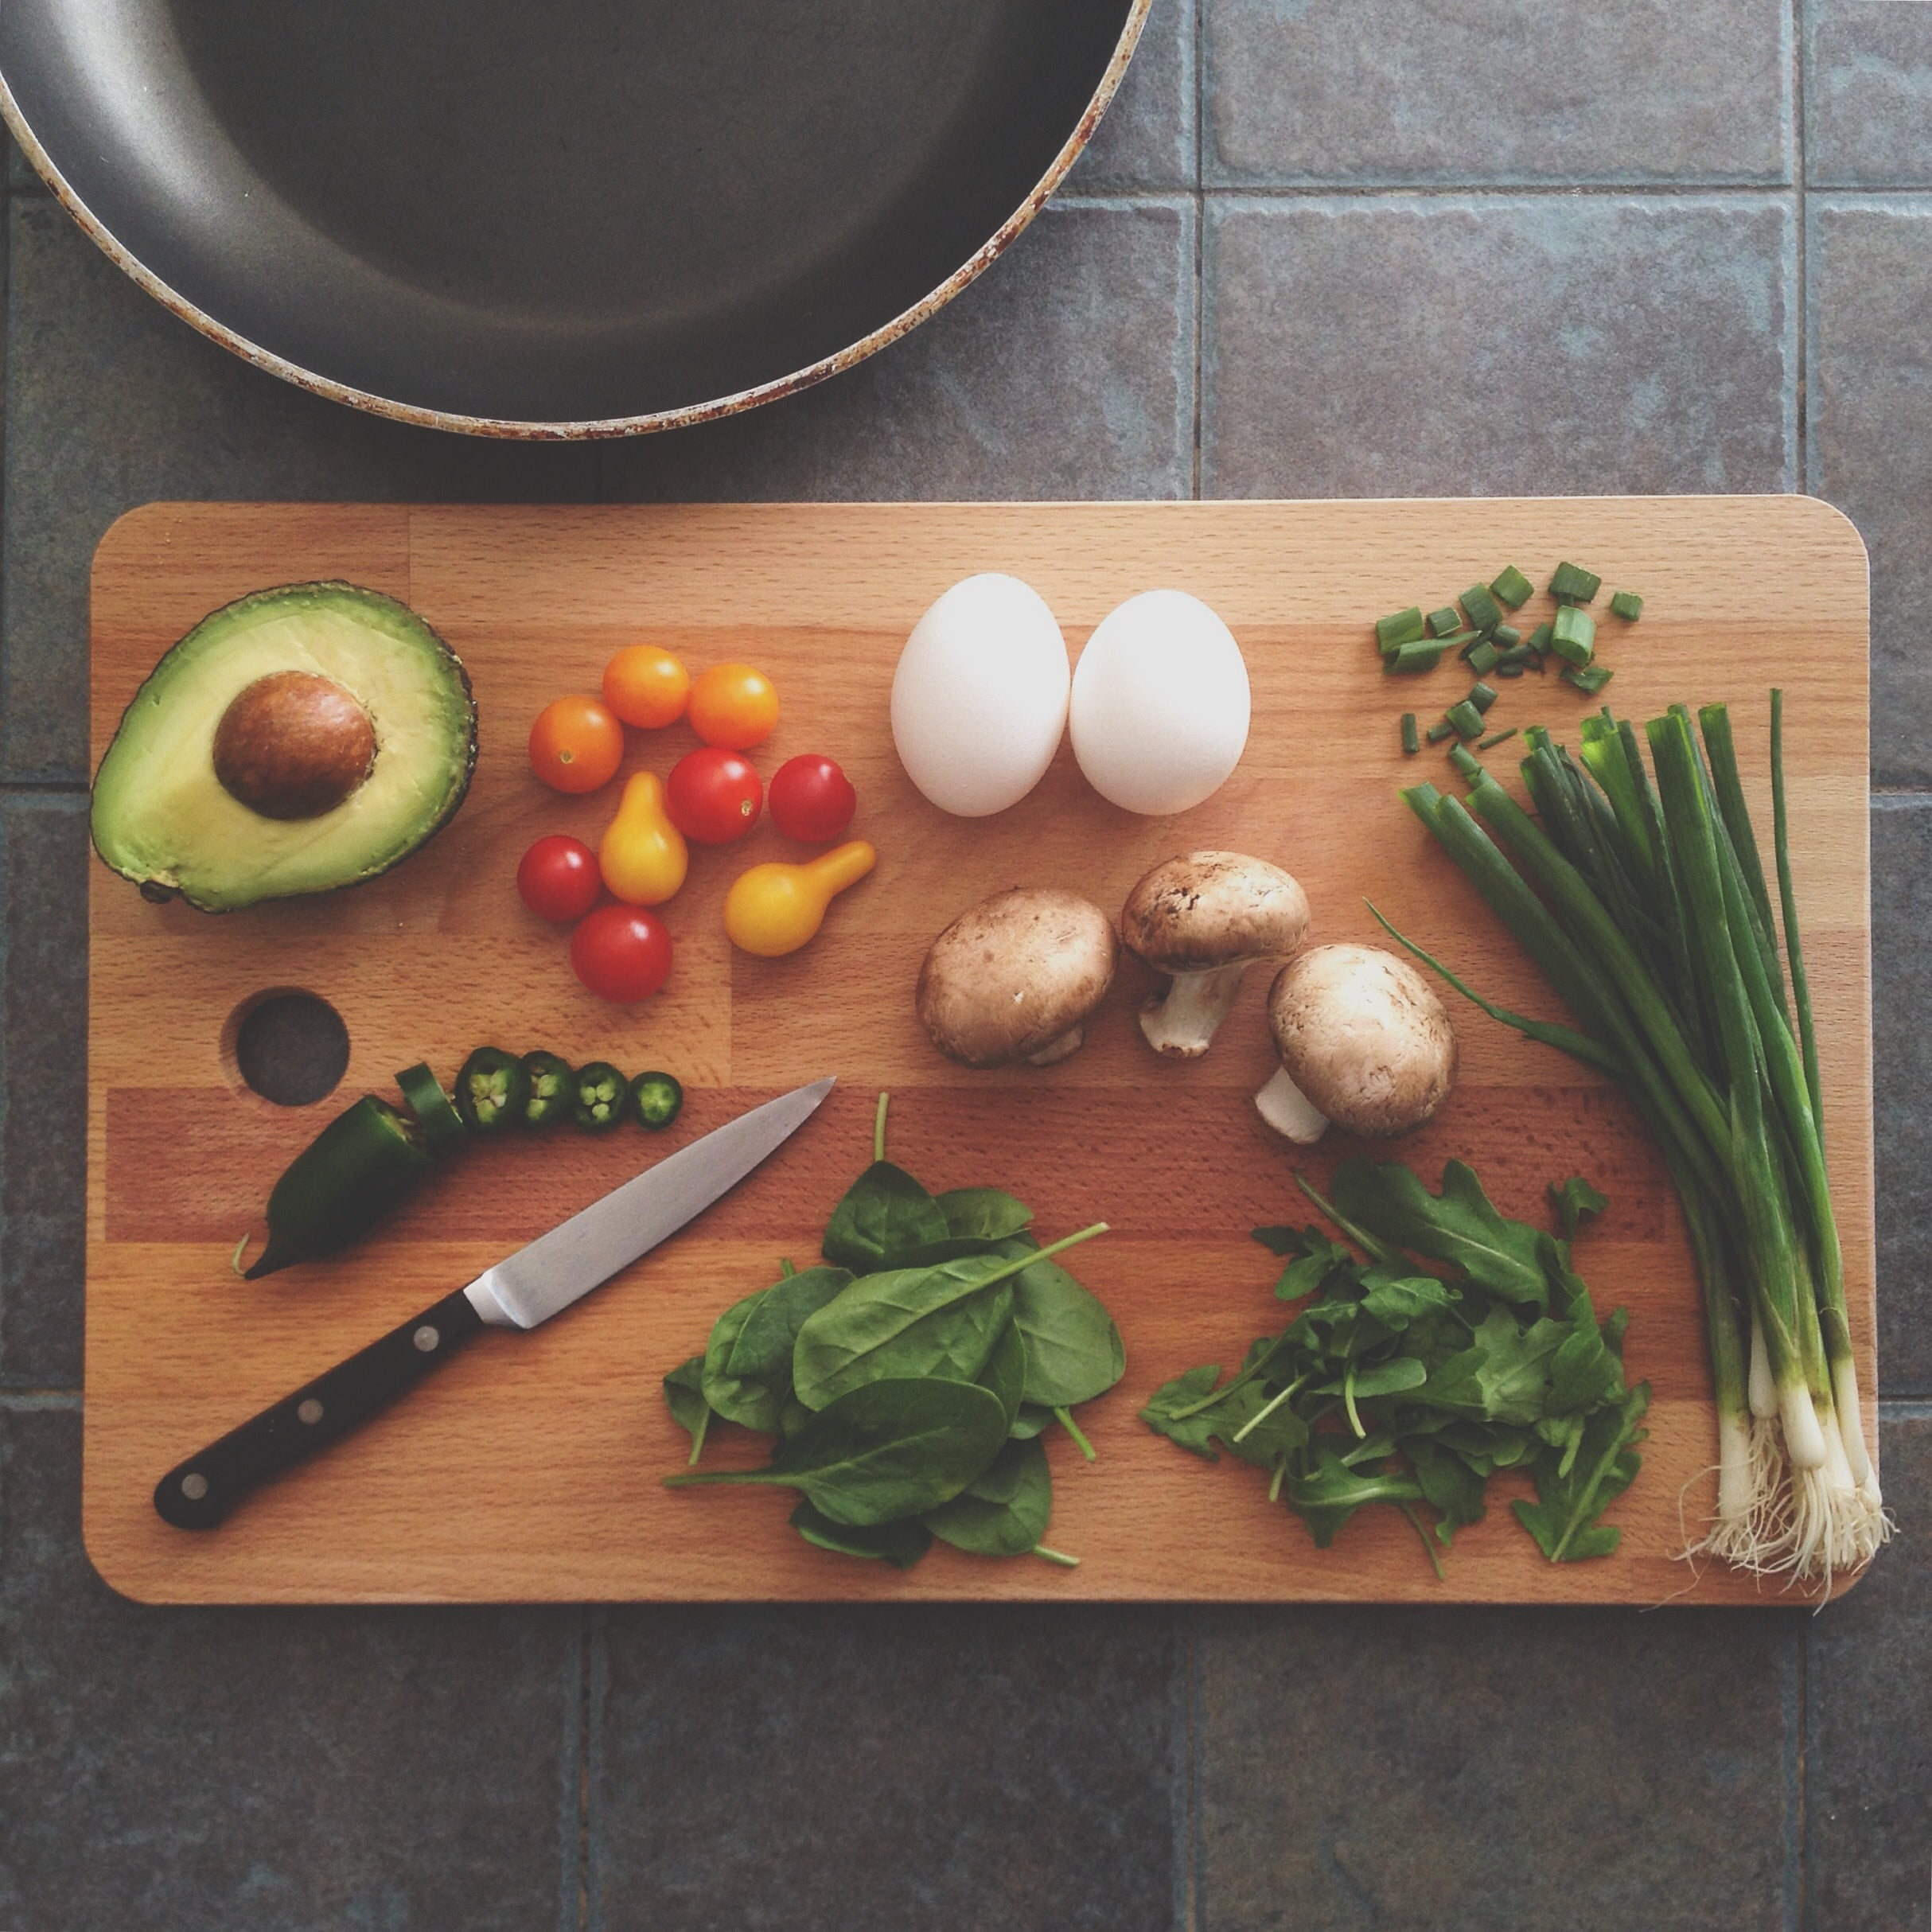 cutting board with green onions, mushrooms, eggs, tomatoes and an avocado